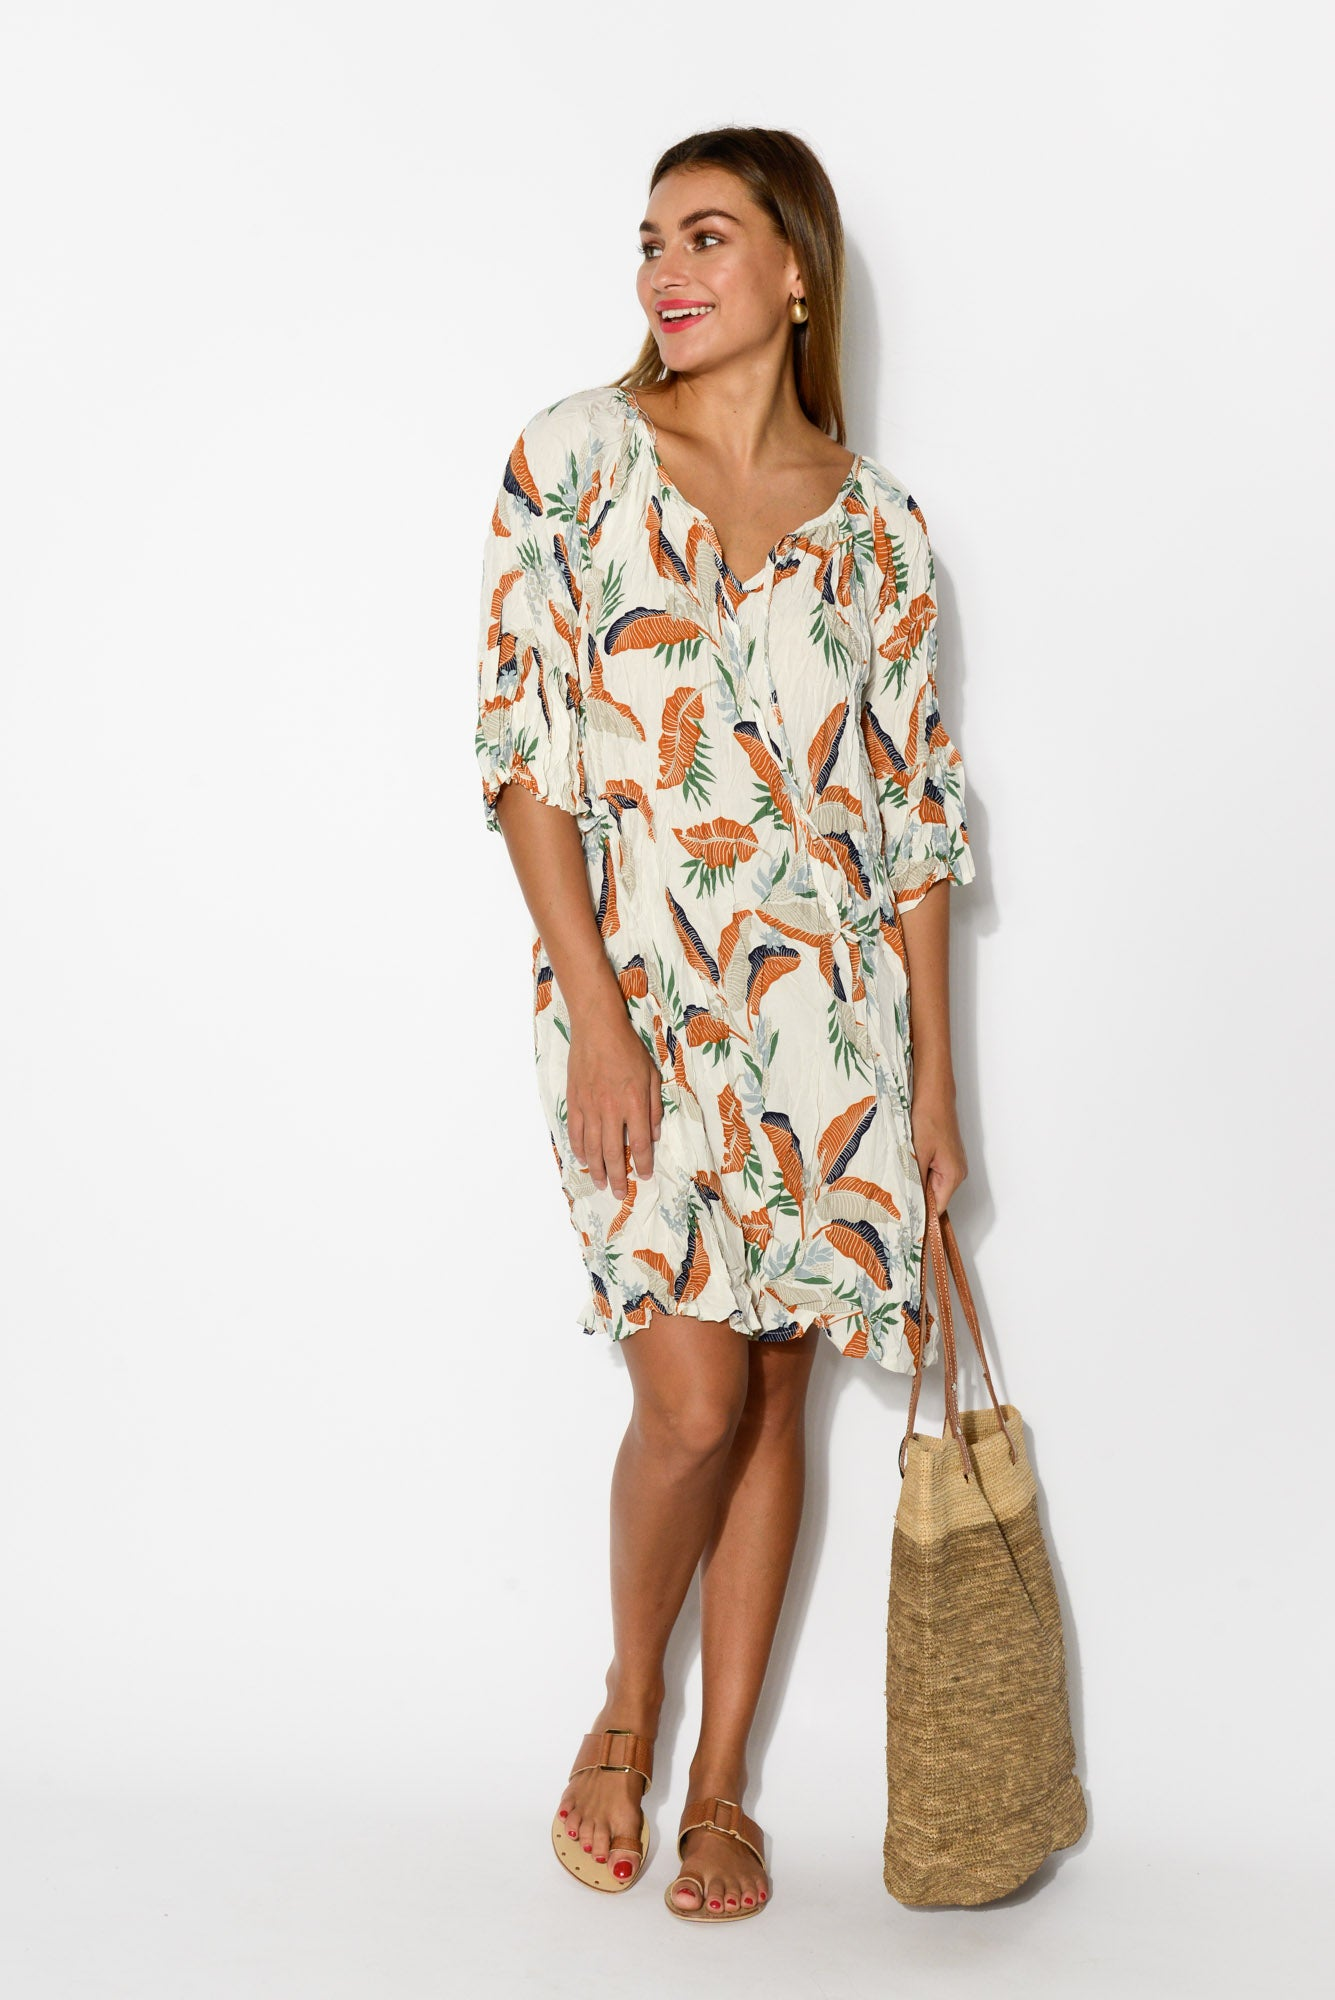 White Garden Bell Sleeve Dress - Blue Bungalow